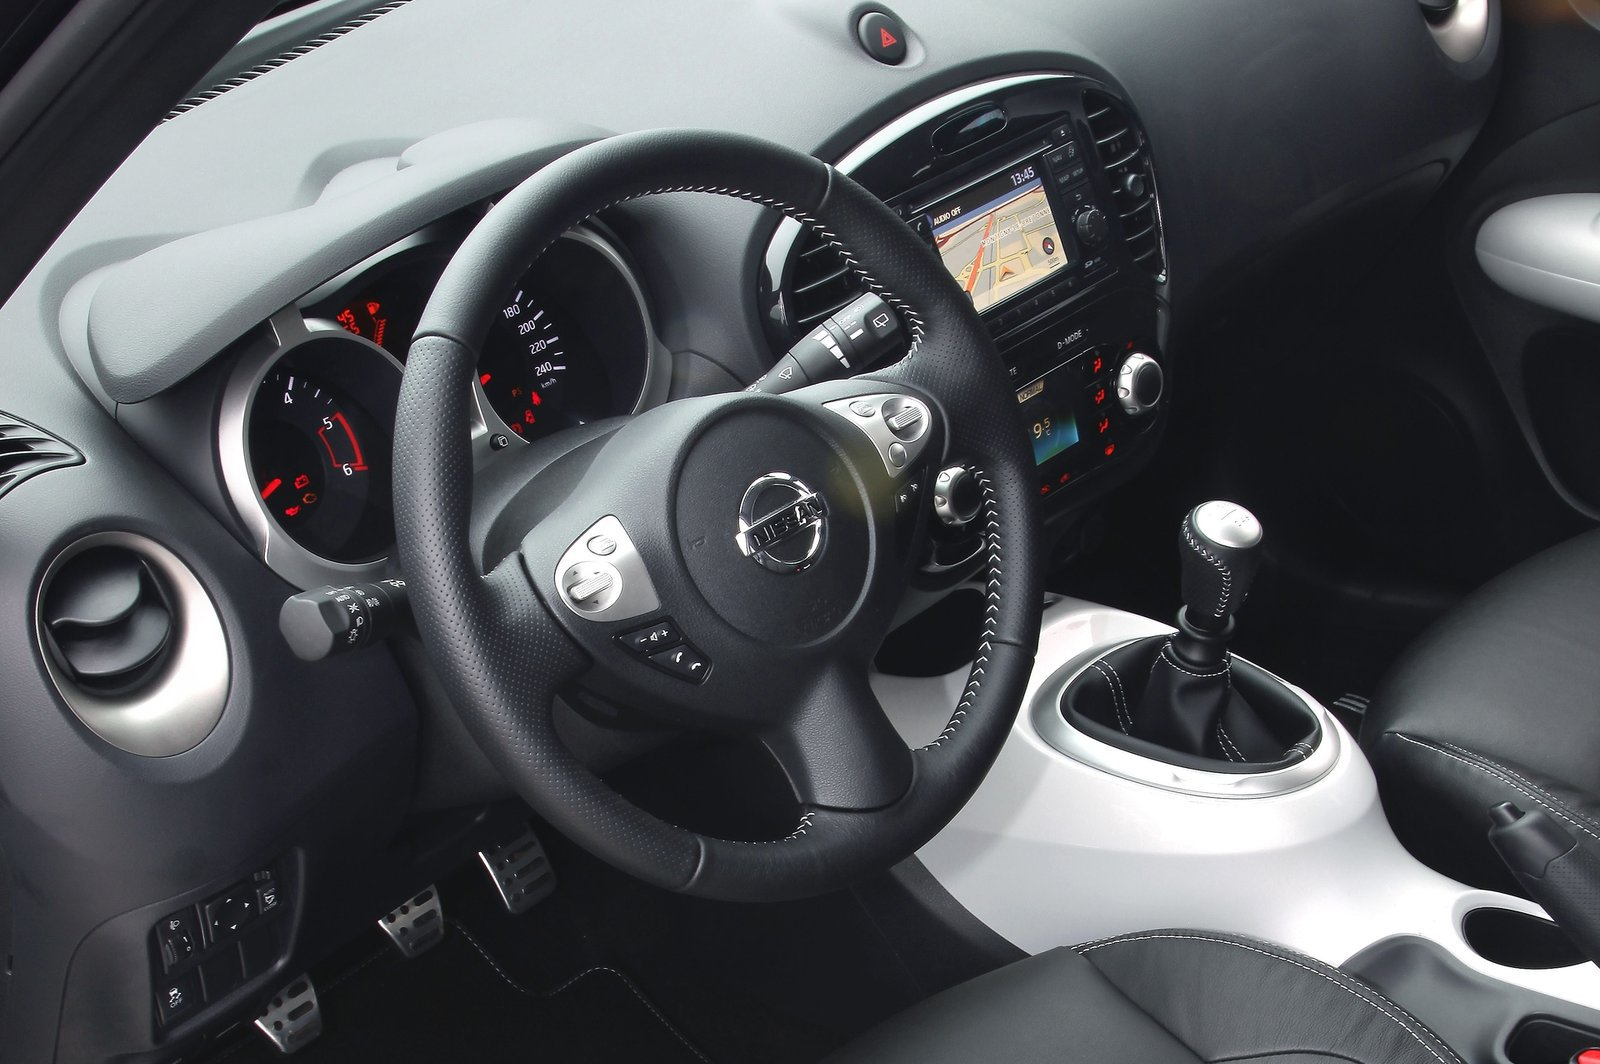 Intrieur 2 6 nissan juke shiro 2012 http nissan for Interieur nissan juke